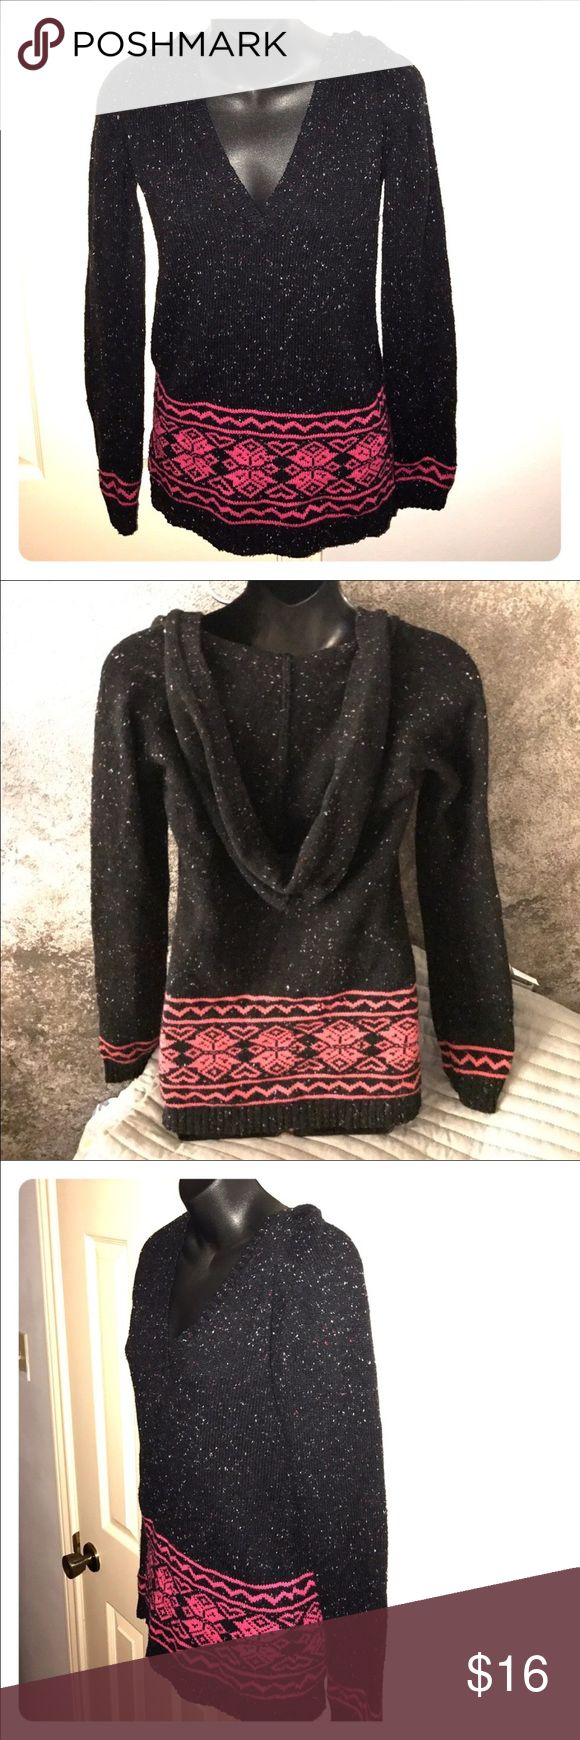 🛒🎉SALE🎉🛒Hoodie sweater v neck large Black and pink (see close up for cool colors in the black). Juniors size  large 11/13. No boundaries brand. GUC. Bundle to save even more. Reasonable offers accepted on my closet. Sweaters